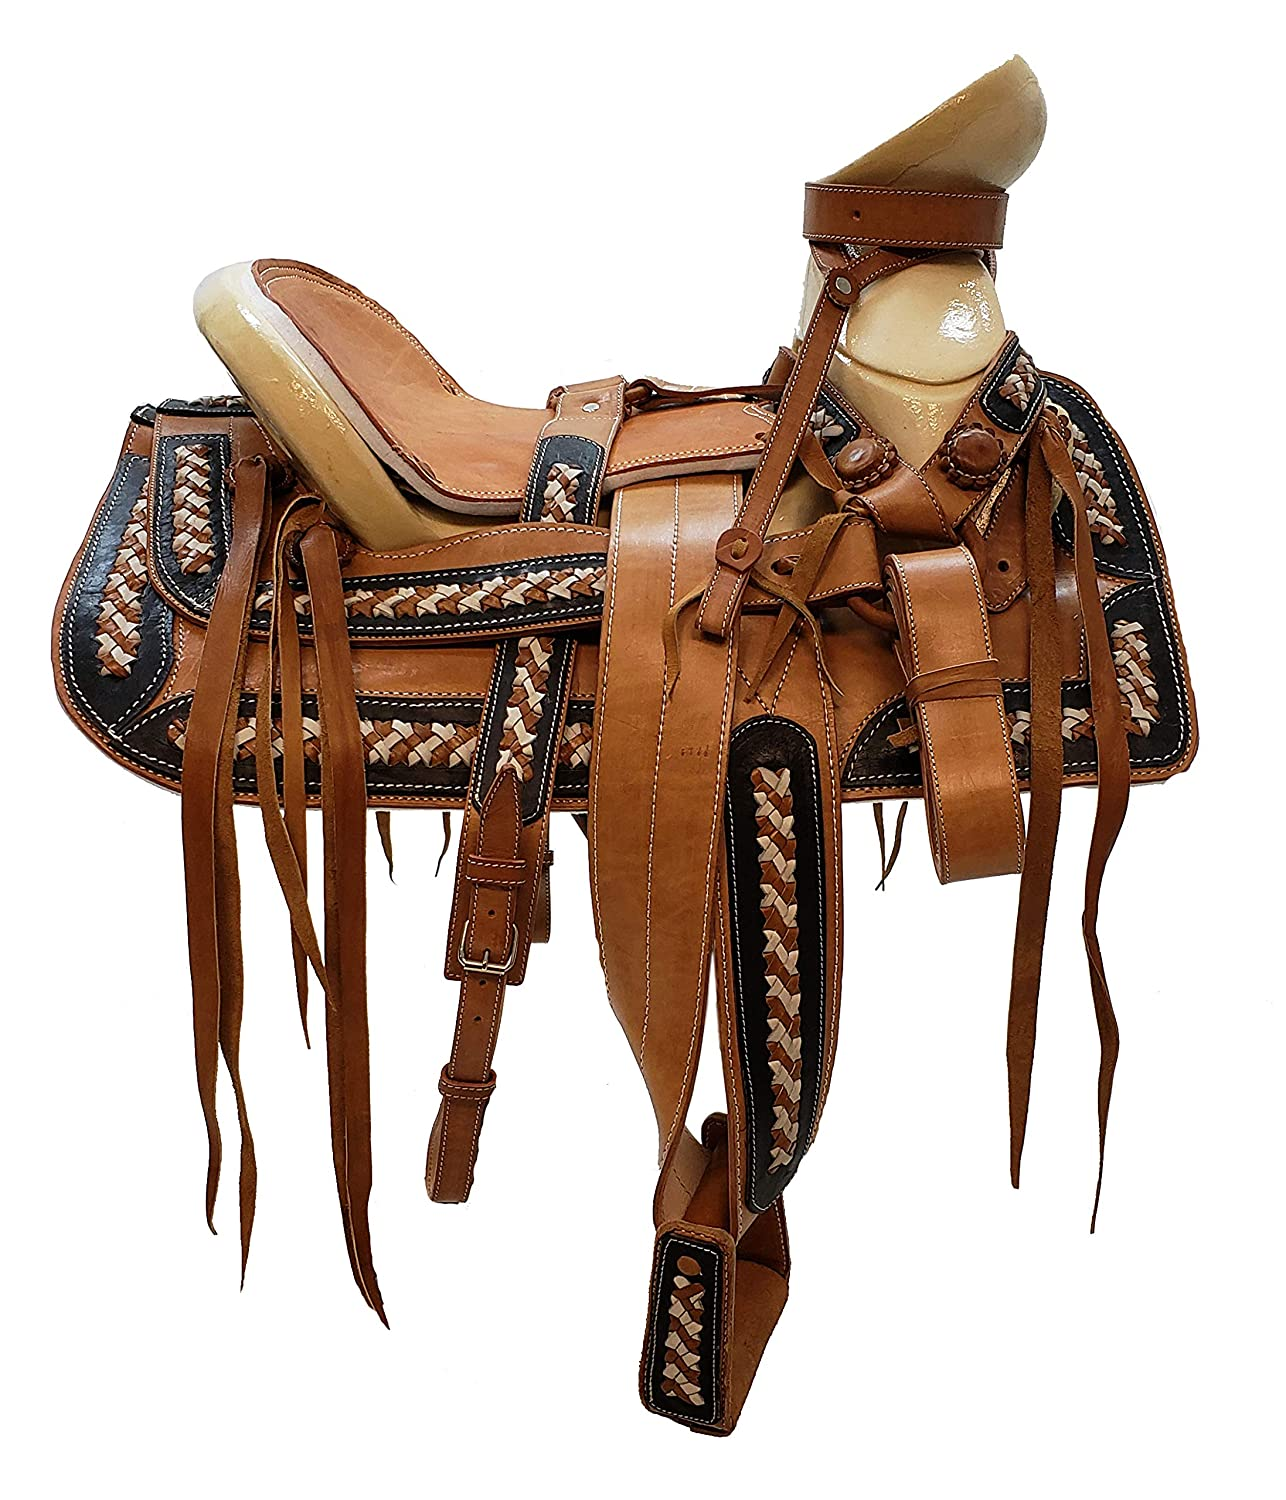 Amazon.com : Mexican Charro Horse Saddle Leather Brown/Tan ...